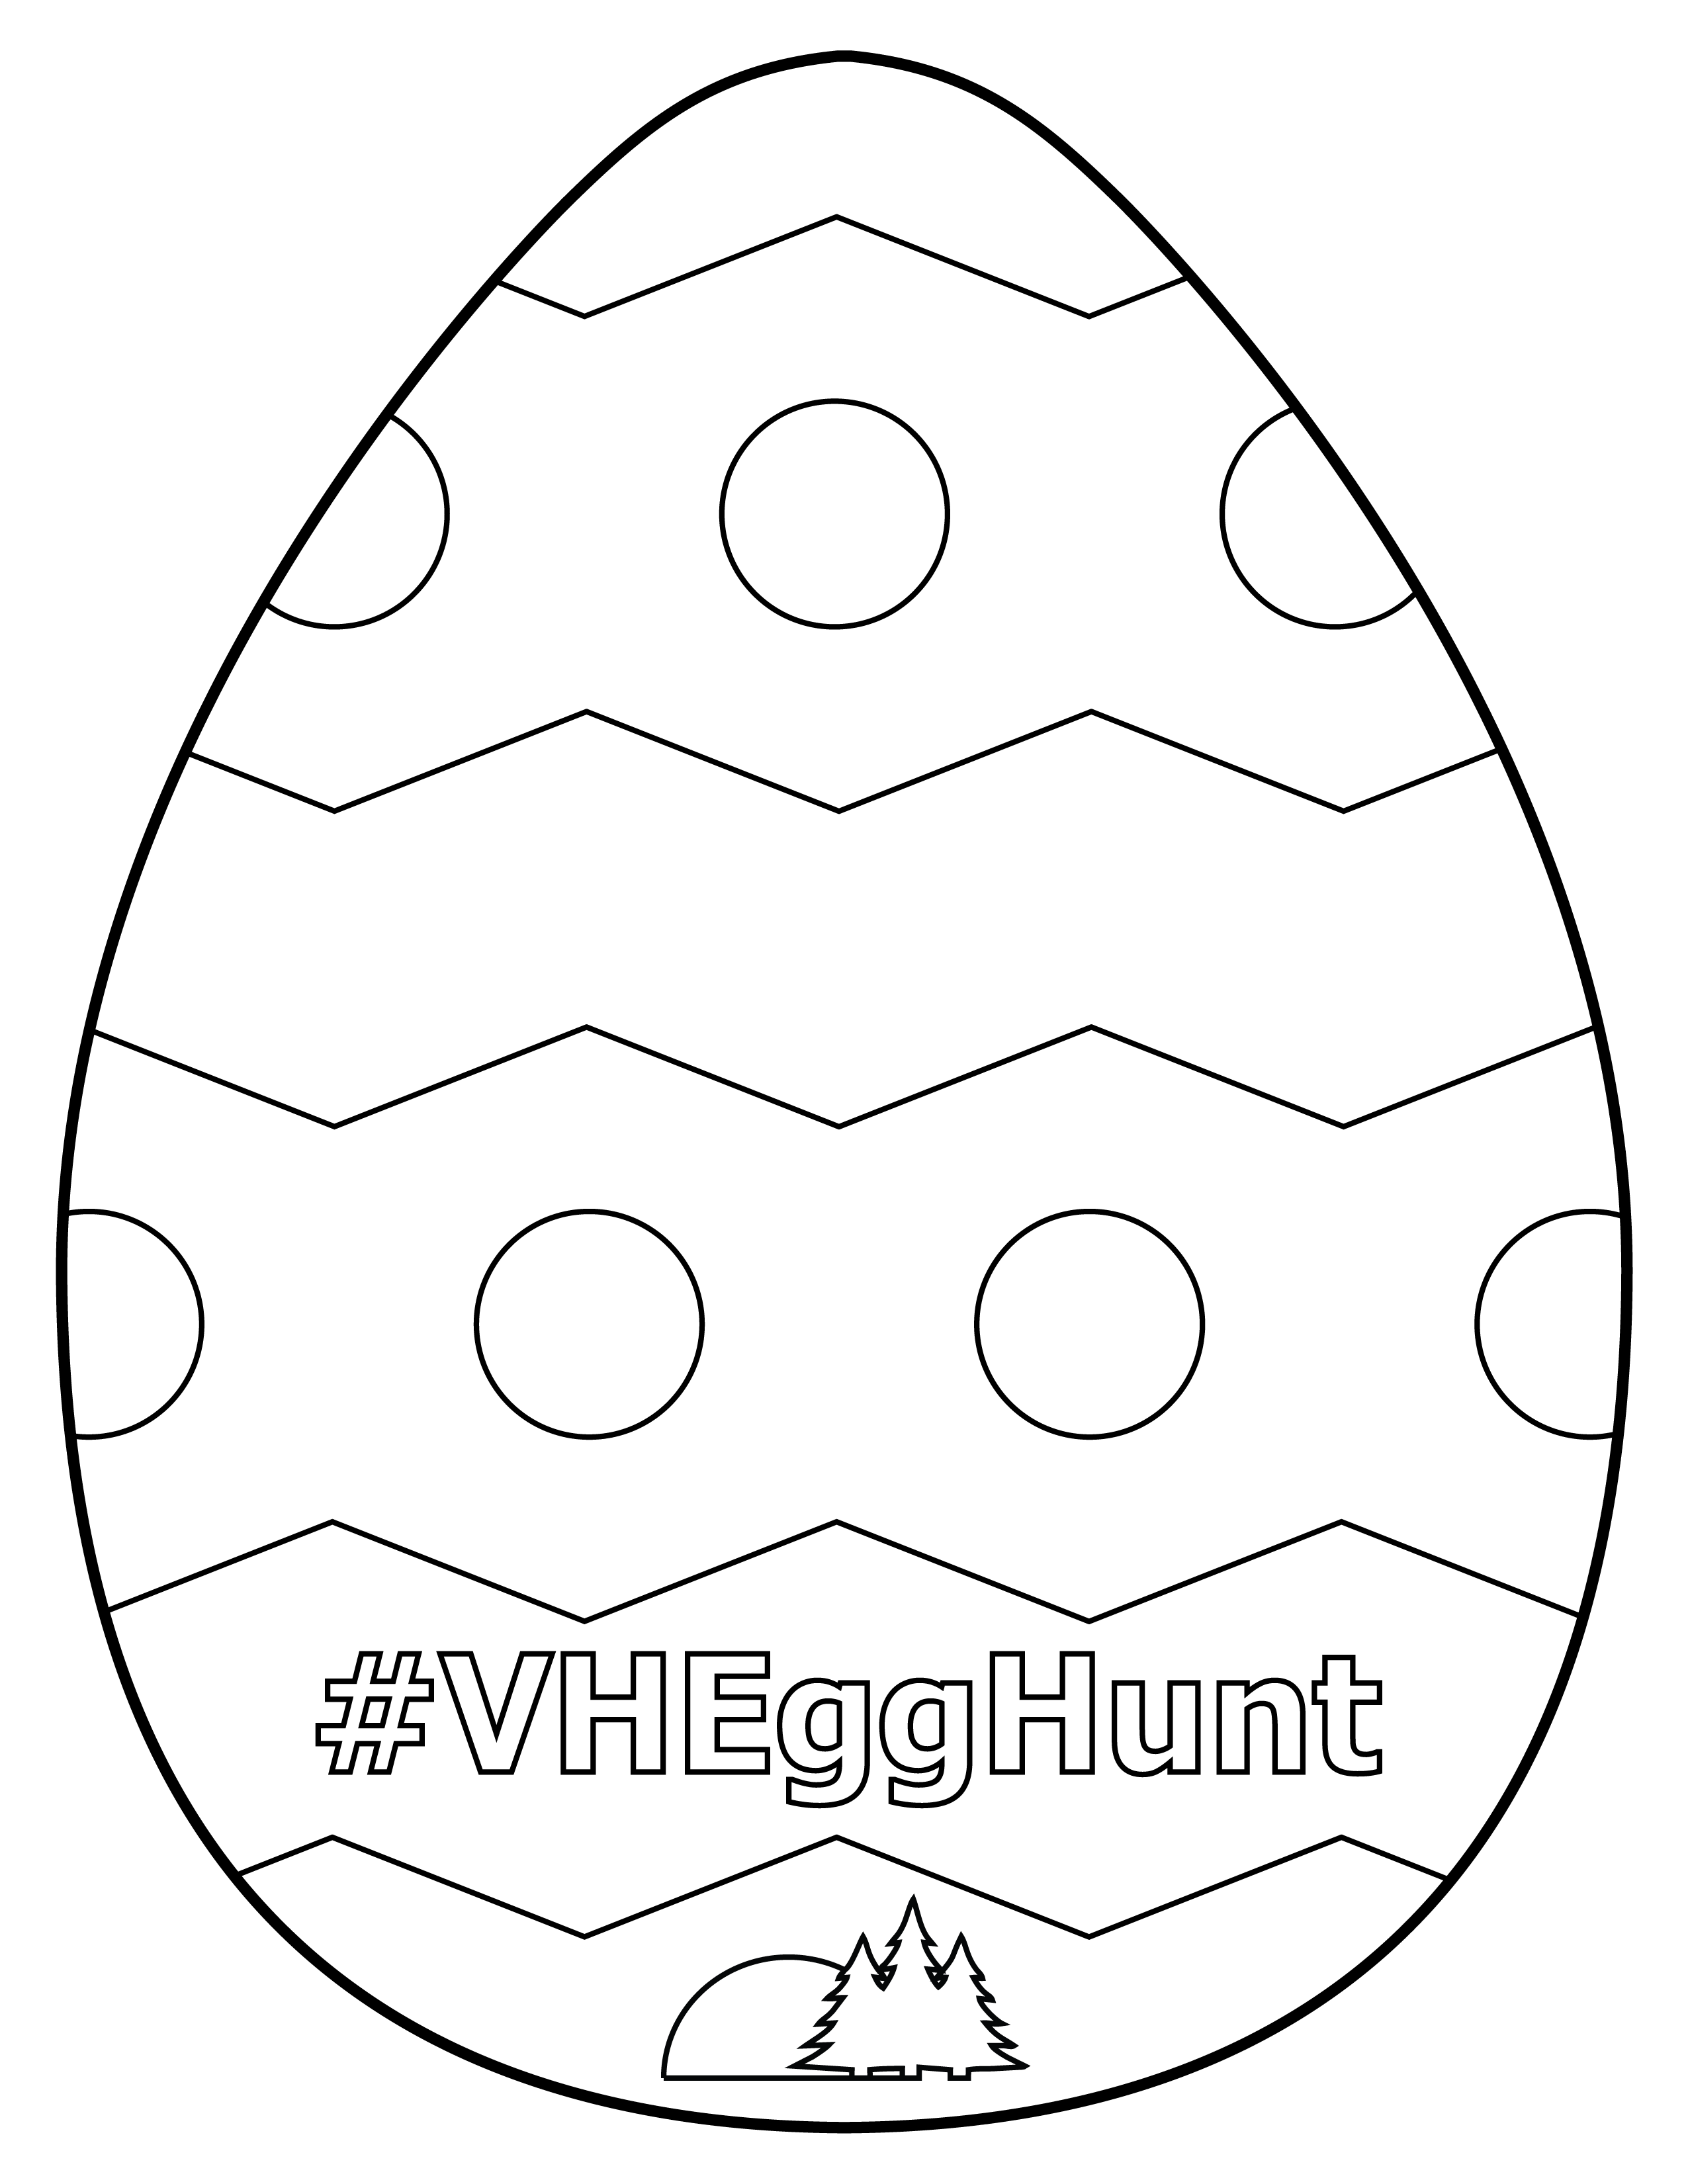 Egg Hunt Printable Opens in new window